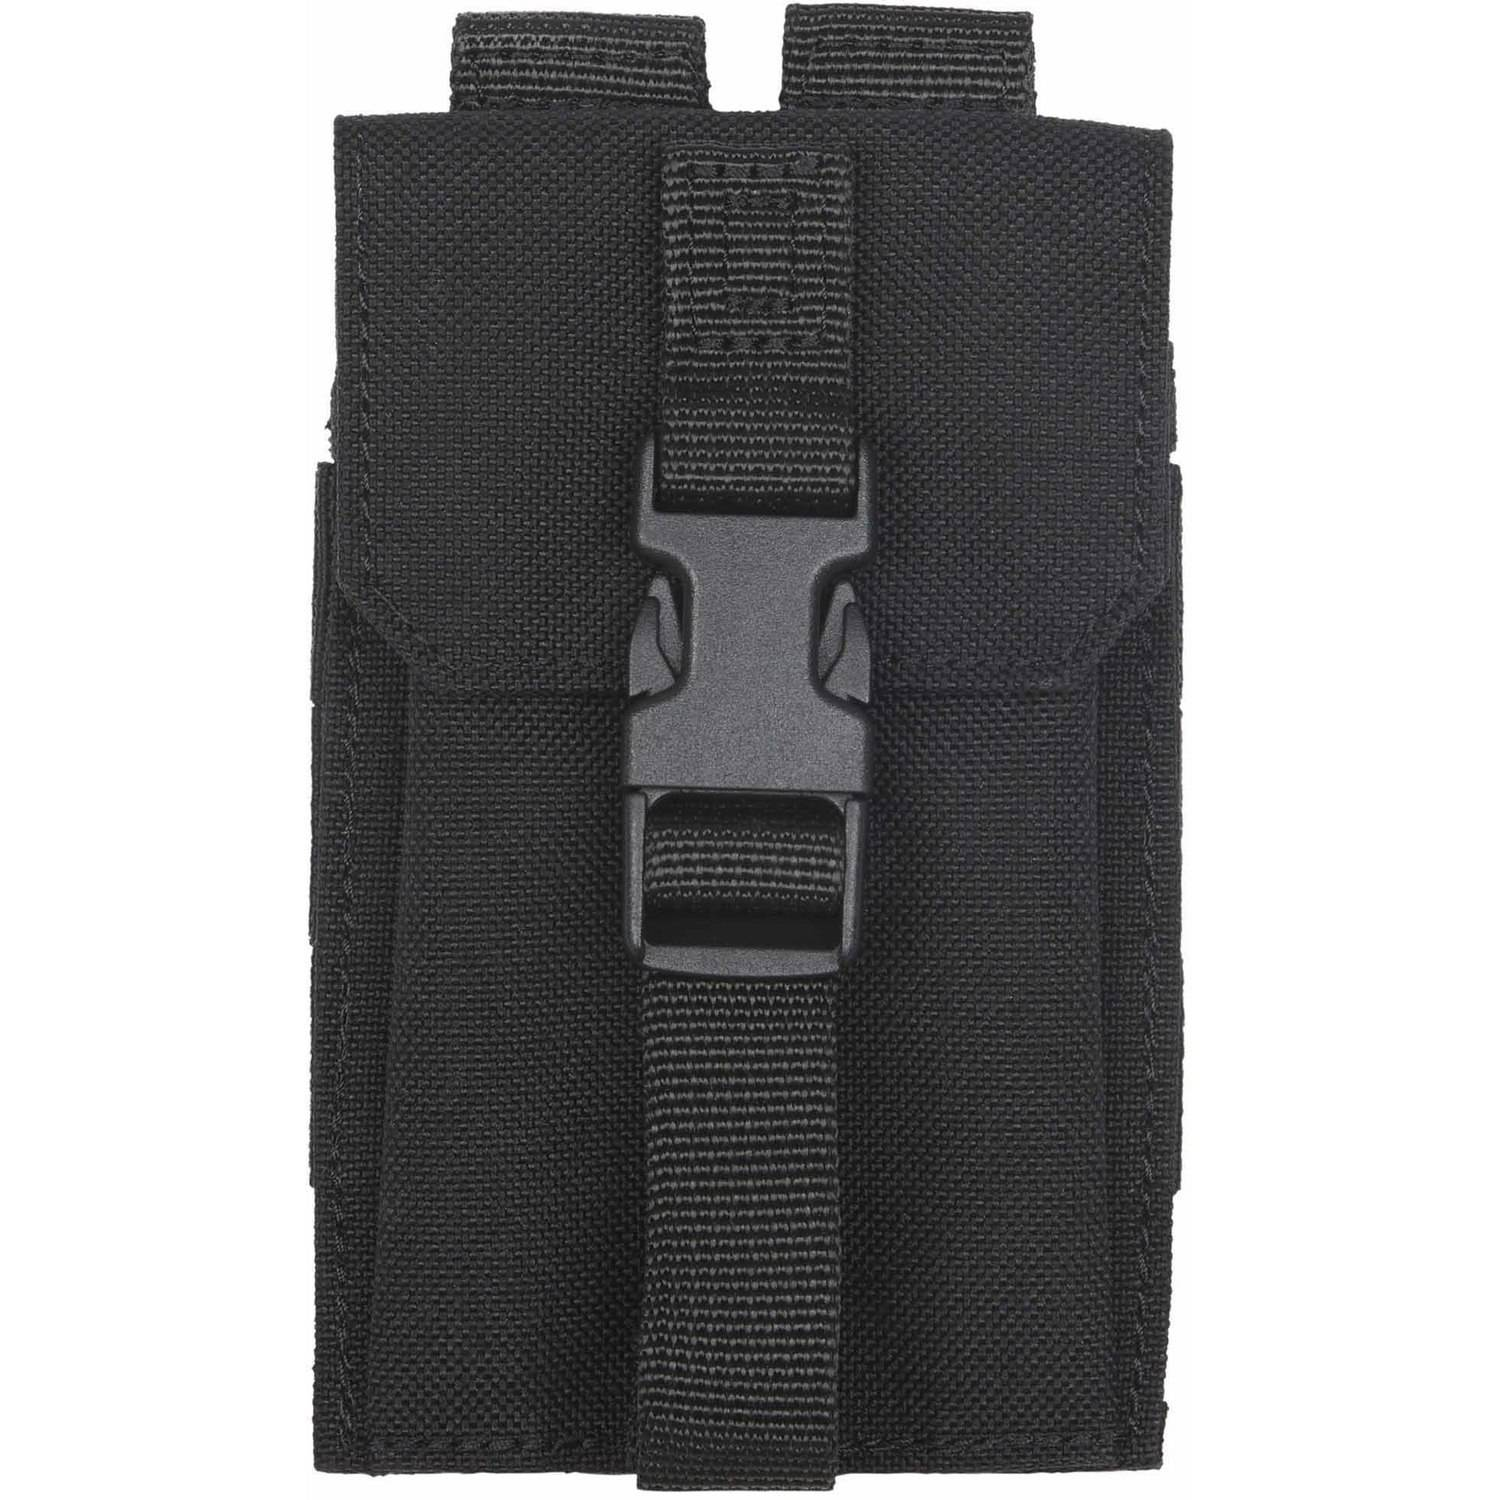 5.11 Tactical Strobe/GPS Pouch, Black